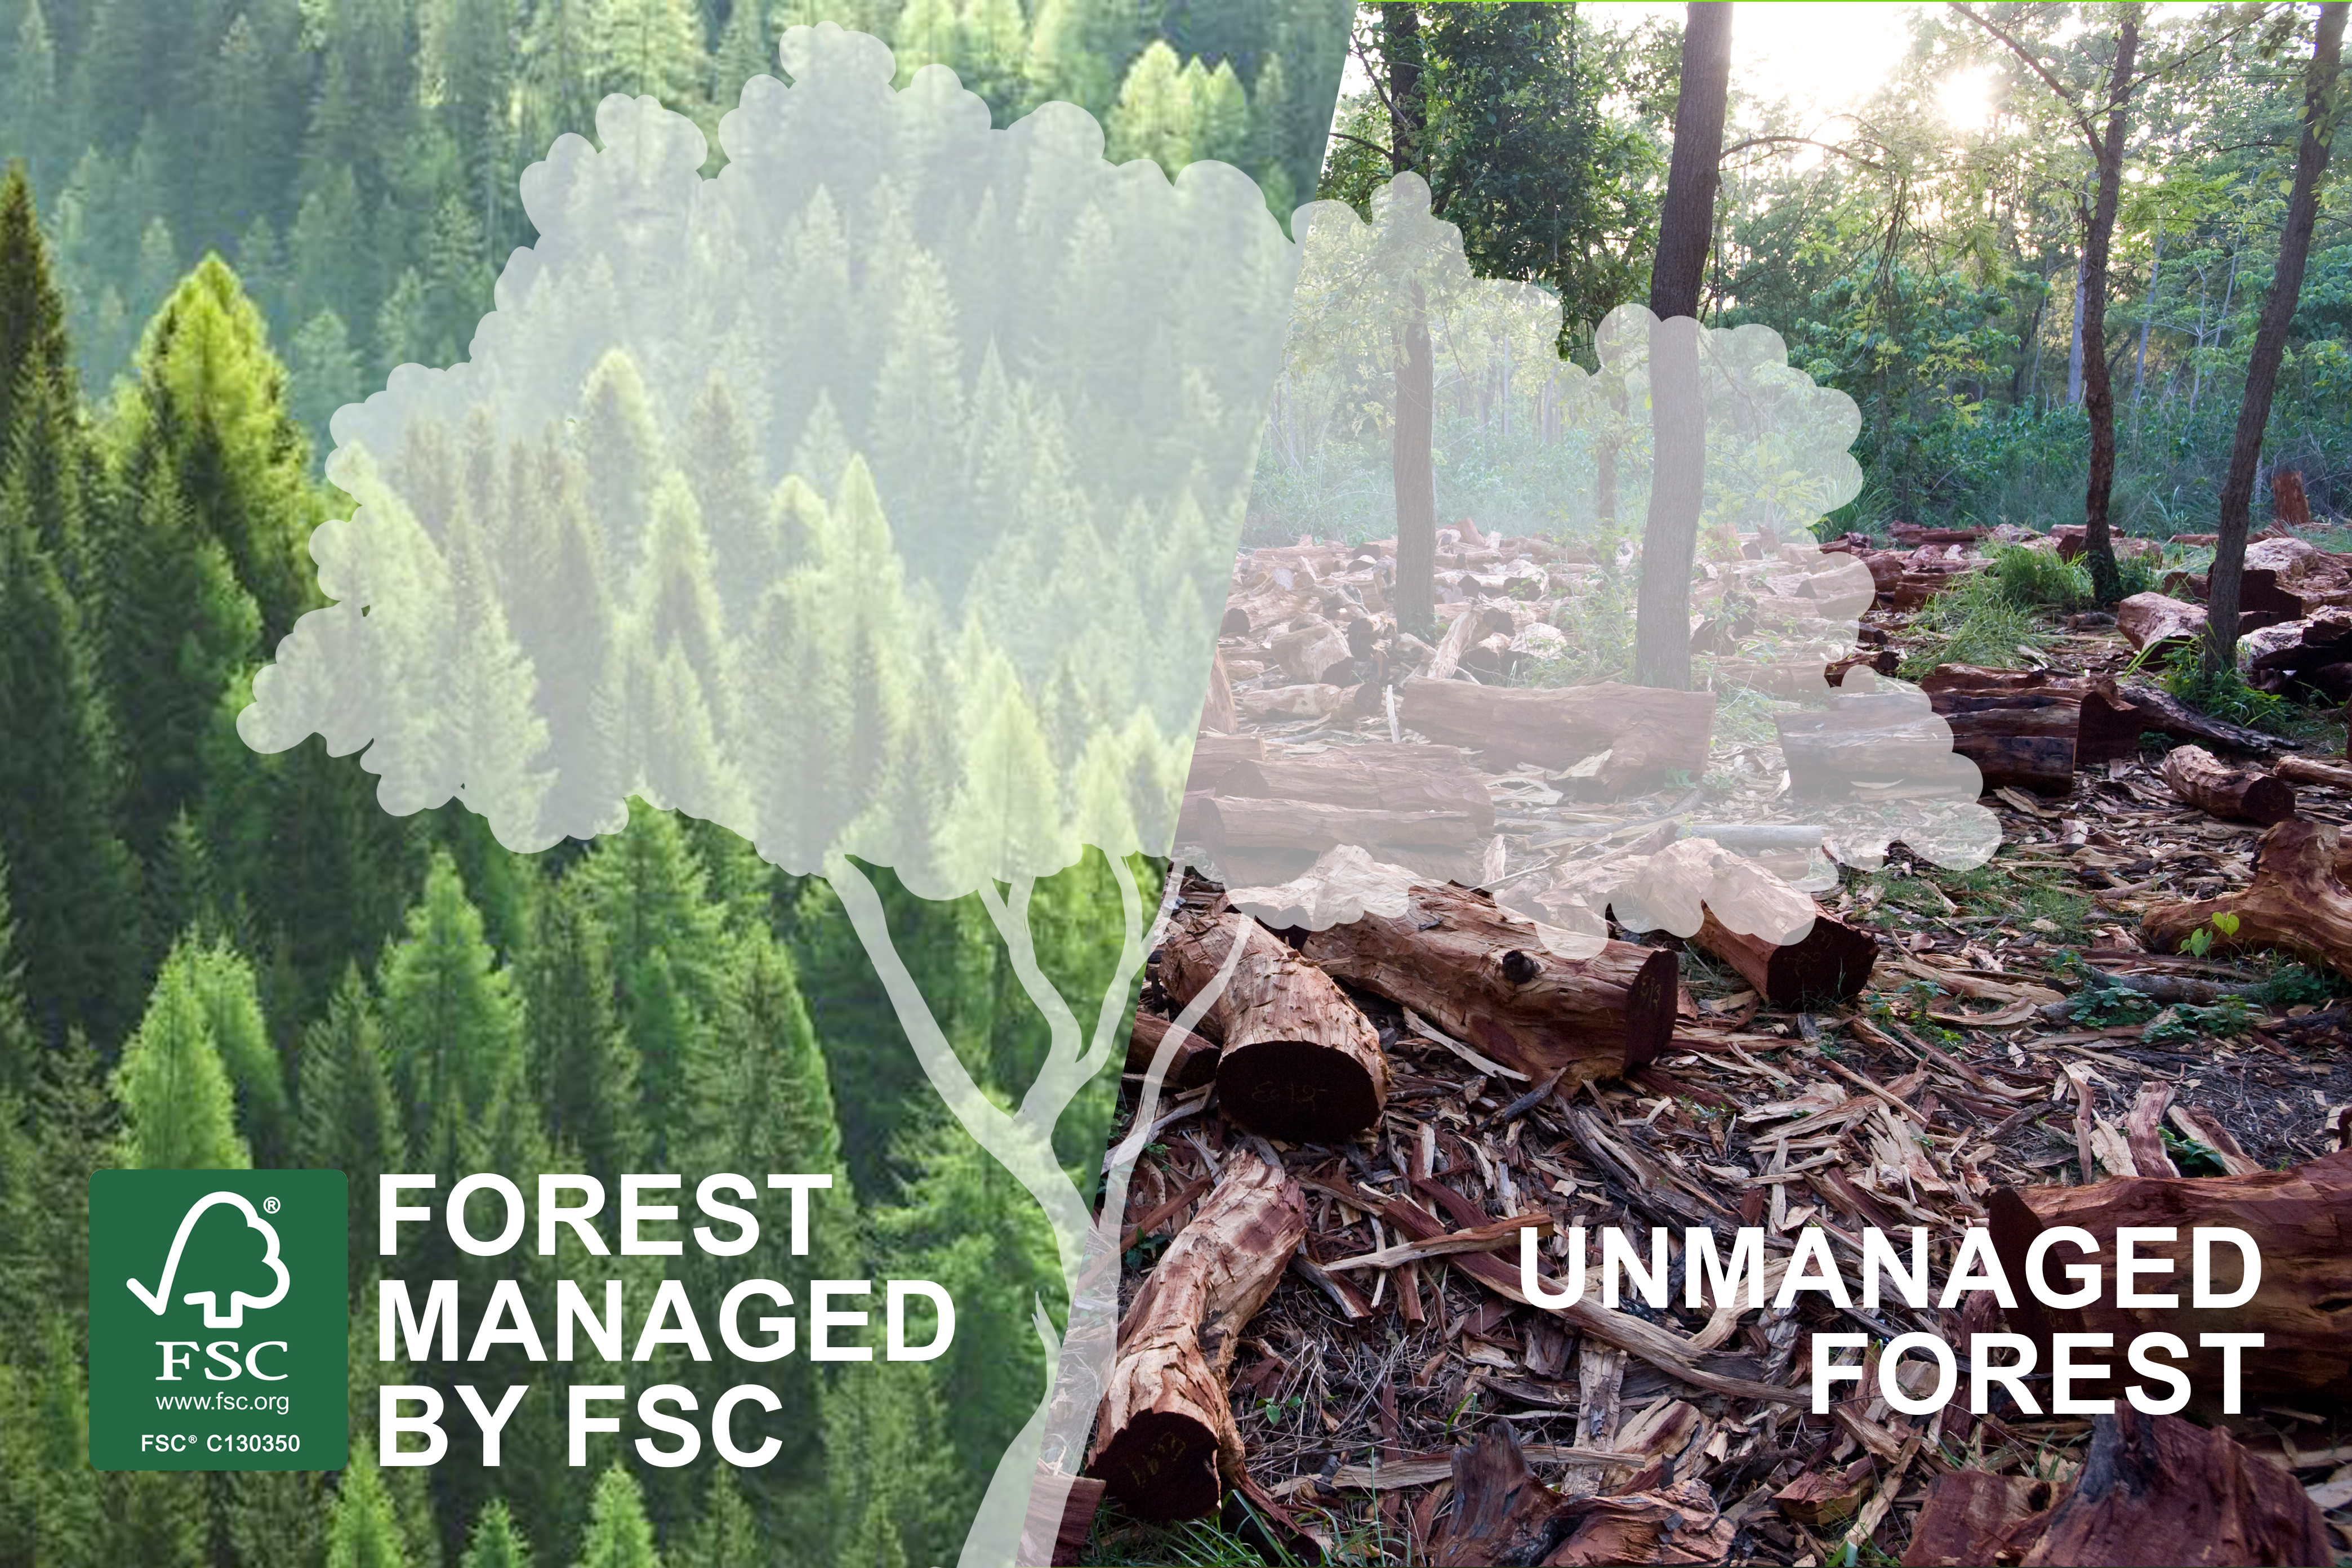 FSC Managed Forest vs Unmanaged Forest